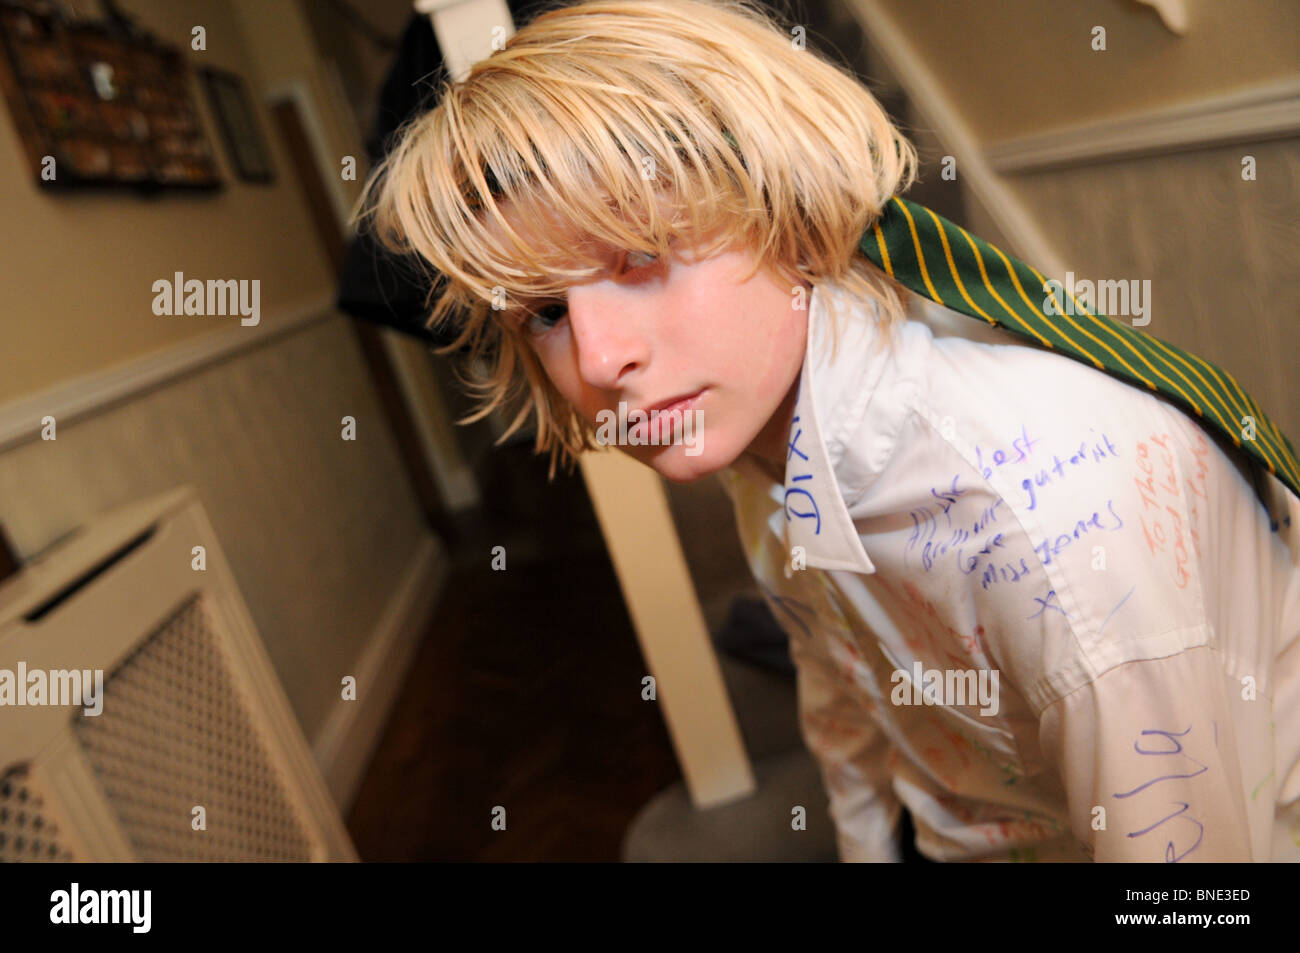 Year 6 schoolboy with tie around his head and writing on his shirt after celebrating leaving junior school sitting - Stock Image